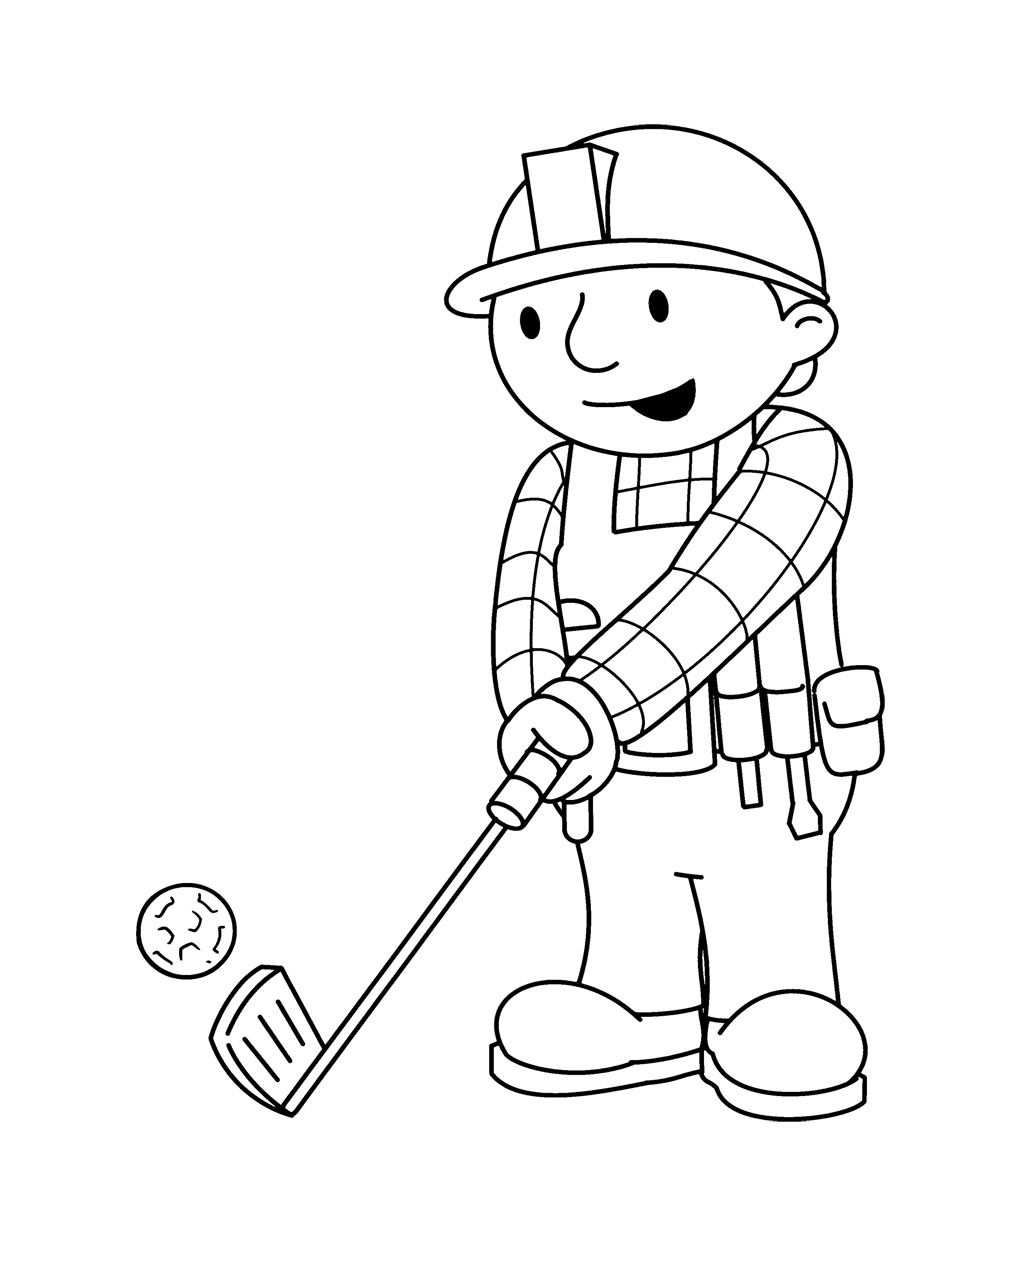 sgolf coloring pages - photo#13